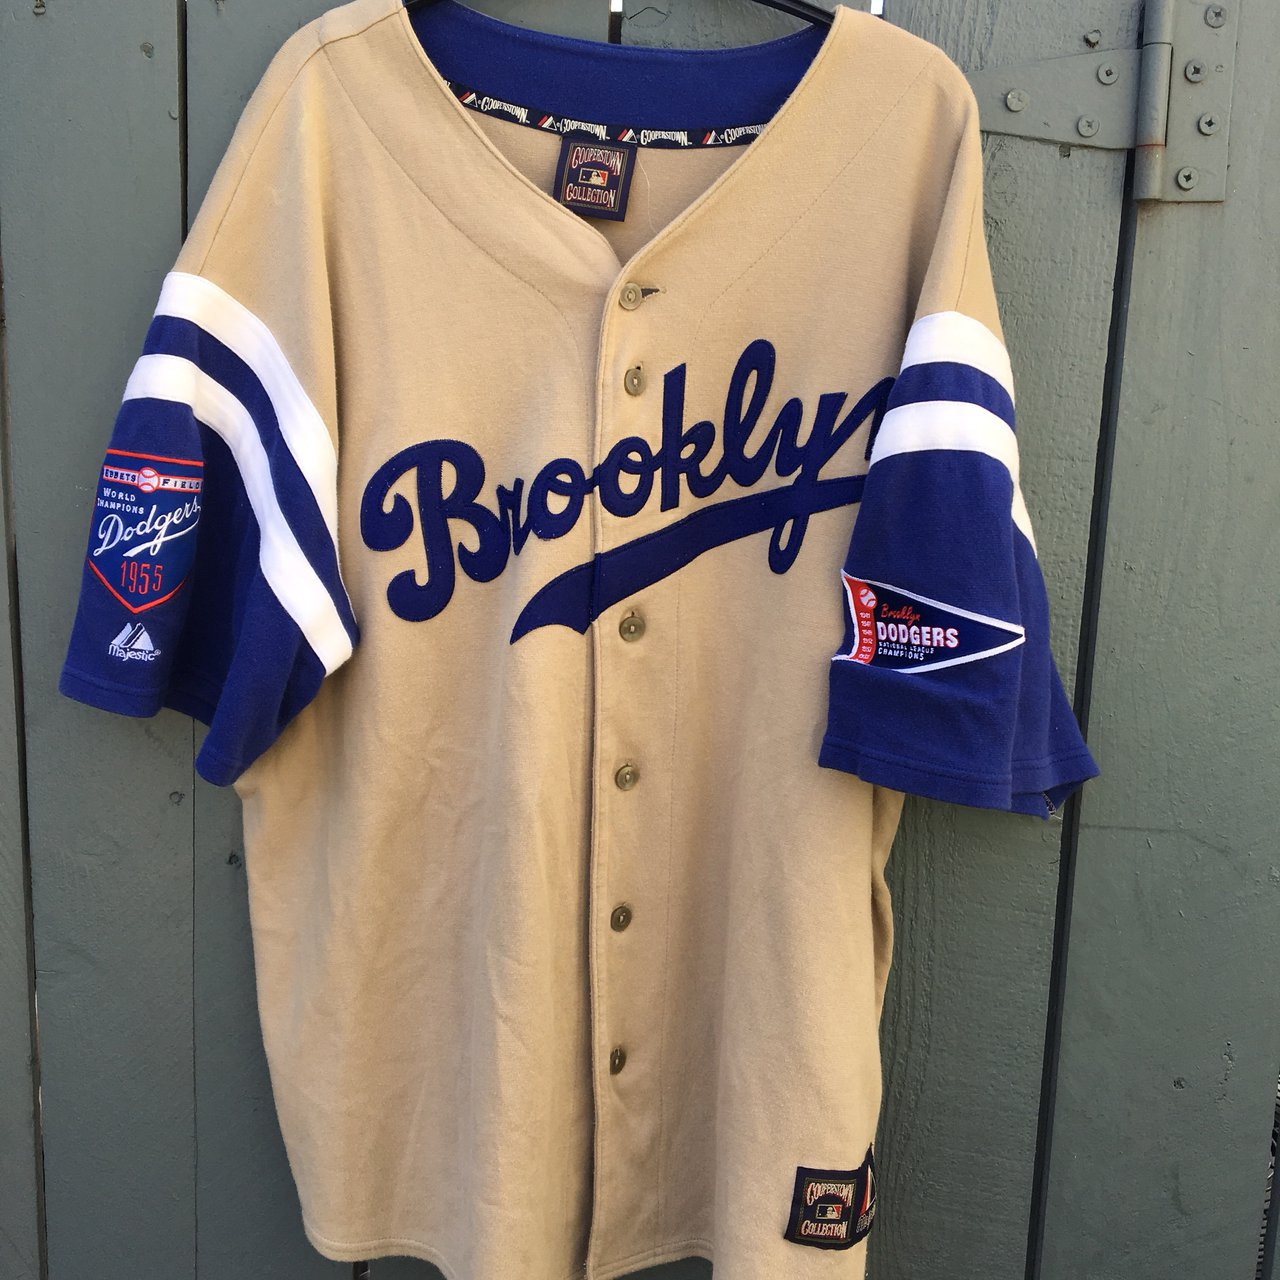 Vintage Brooklyn Dodgers jersey! Cooperstown collection with - Depop 732fe8f14d0